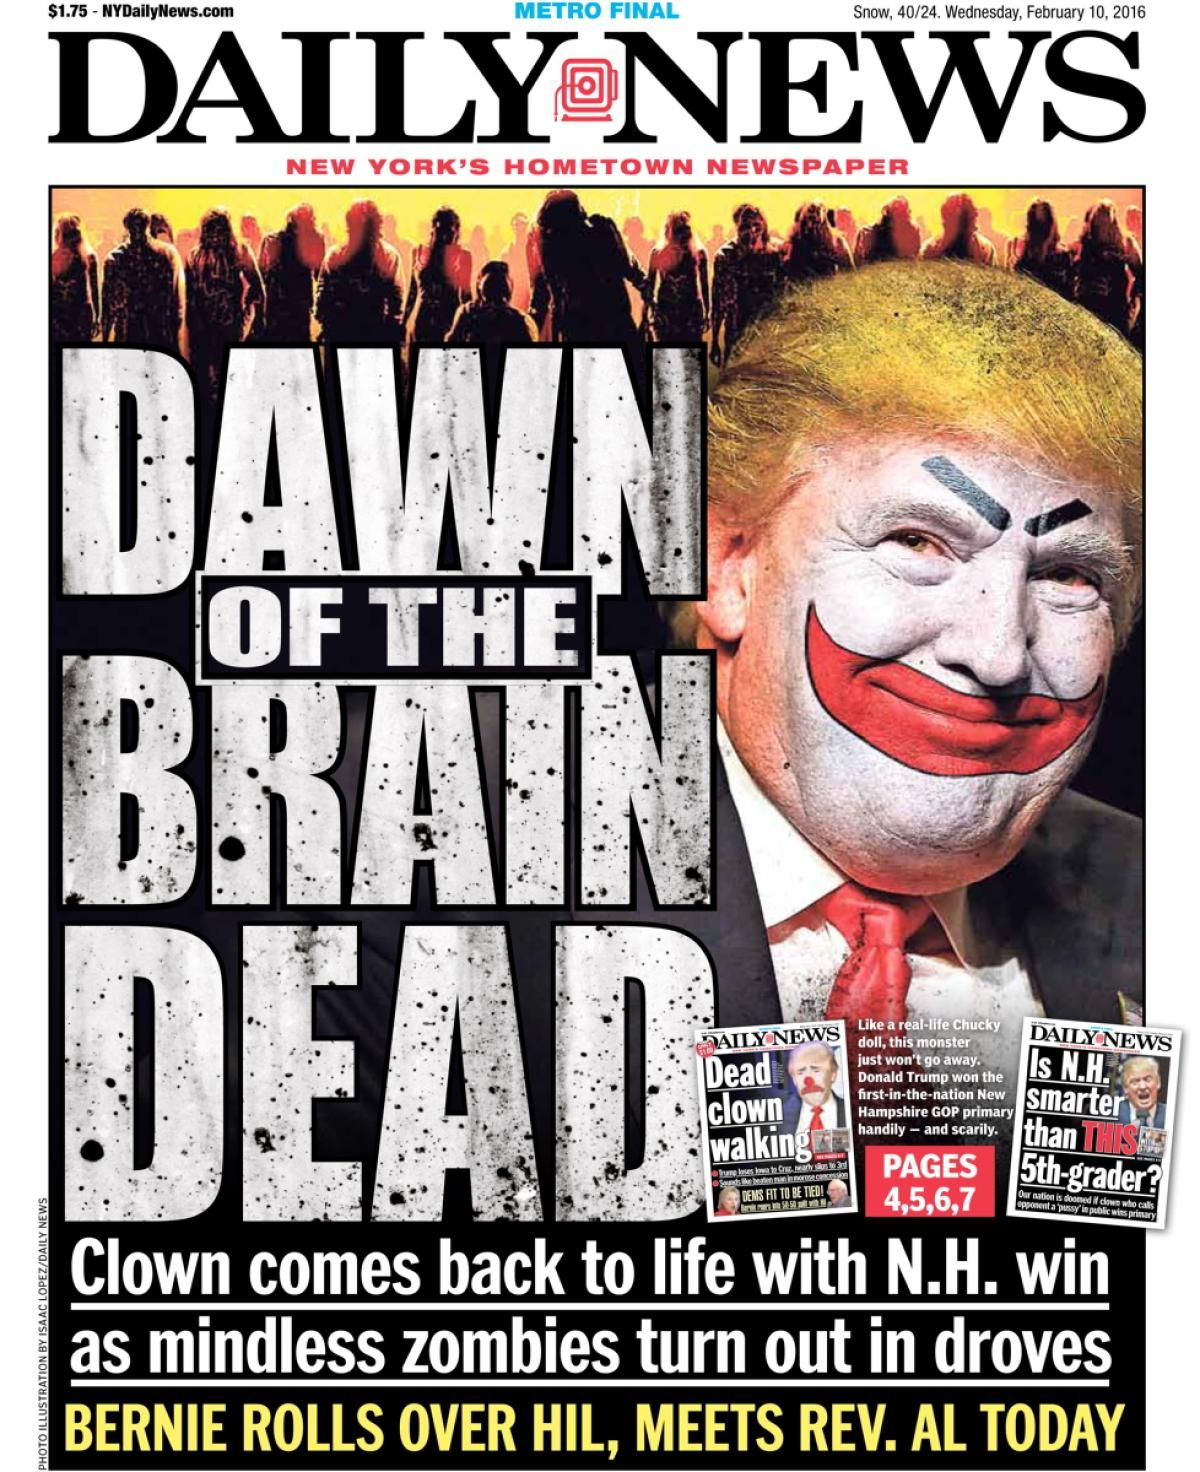 Women will continue to stand up for our rights after march new york daily news - House Of Horrors November 9 2016 Photos New York Daily News Front Pages On The Presidential Election